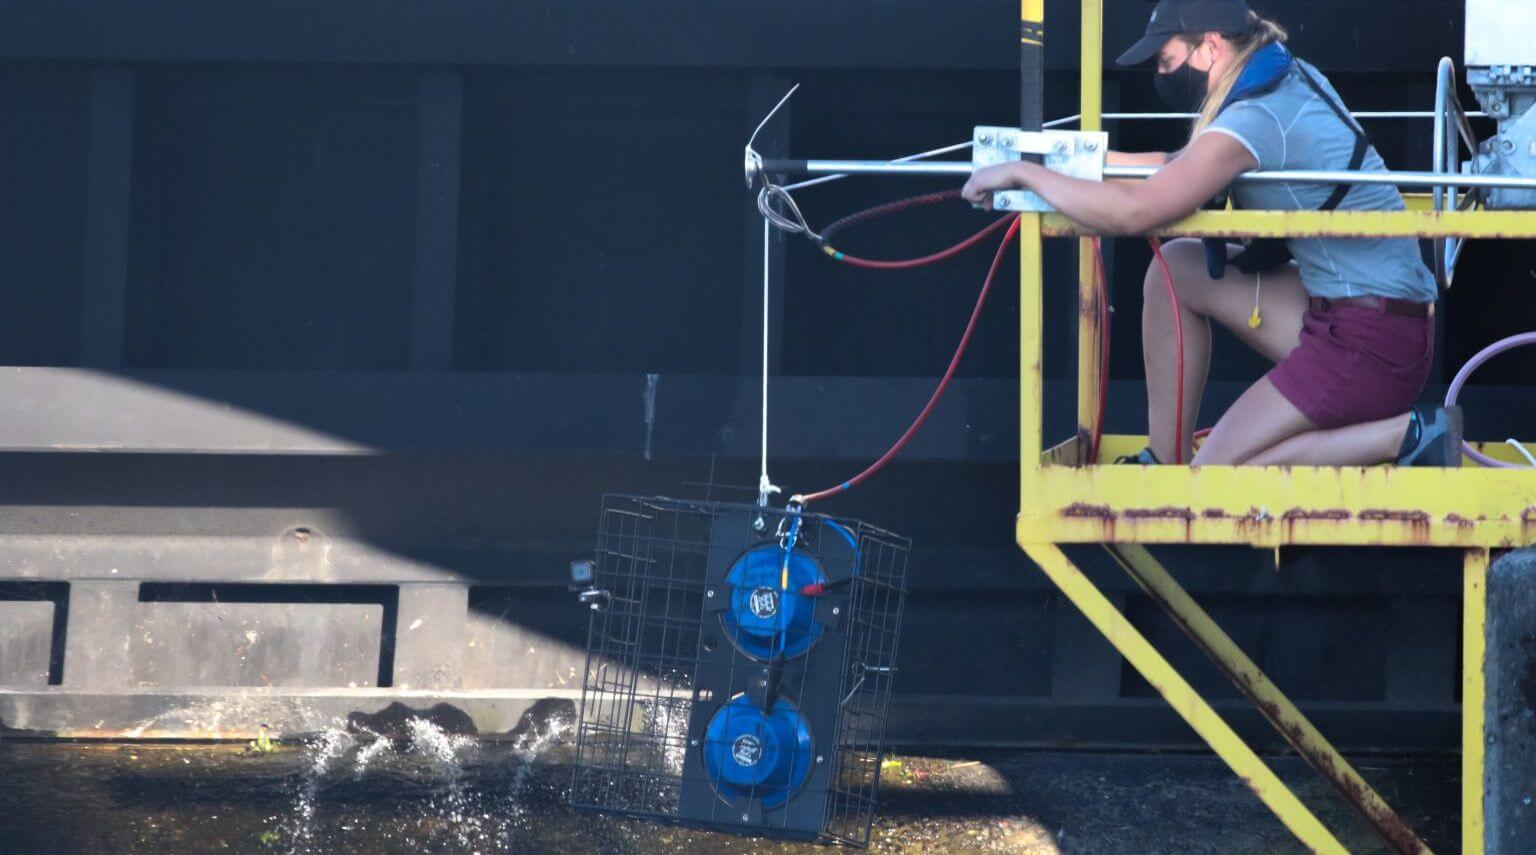 U.S. Army Corps uses GenusWave technology to to deter seals from Ballard Locks